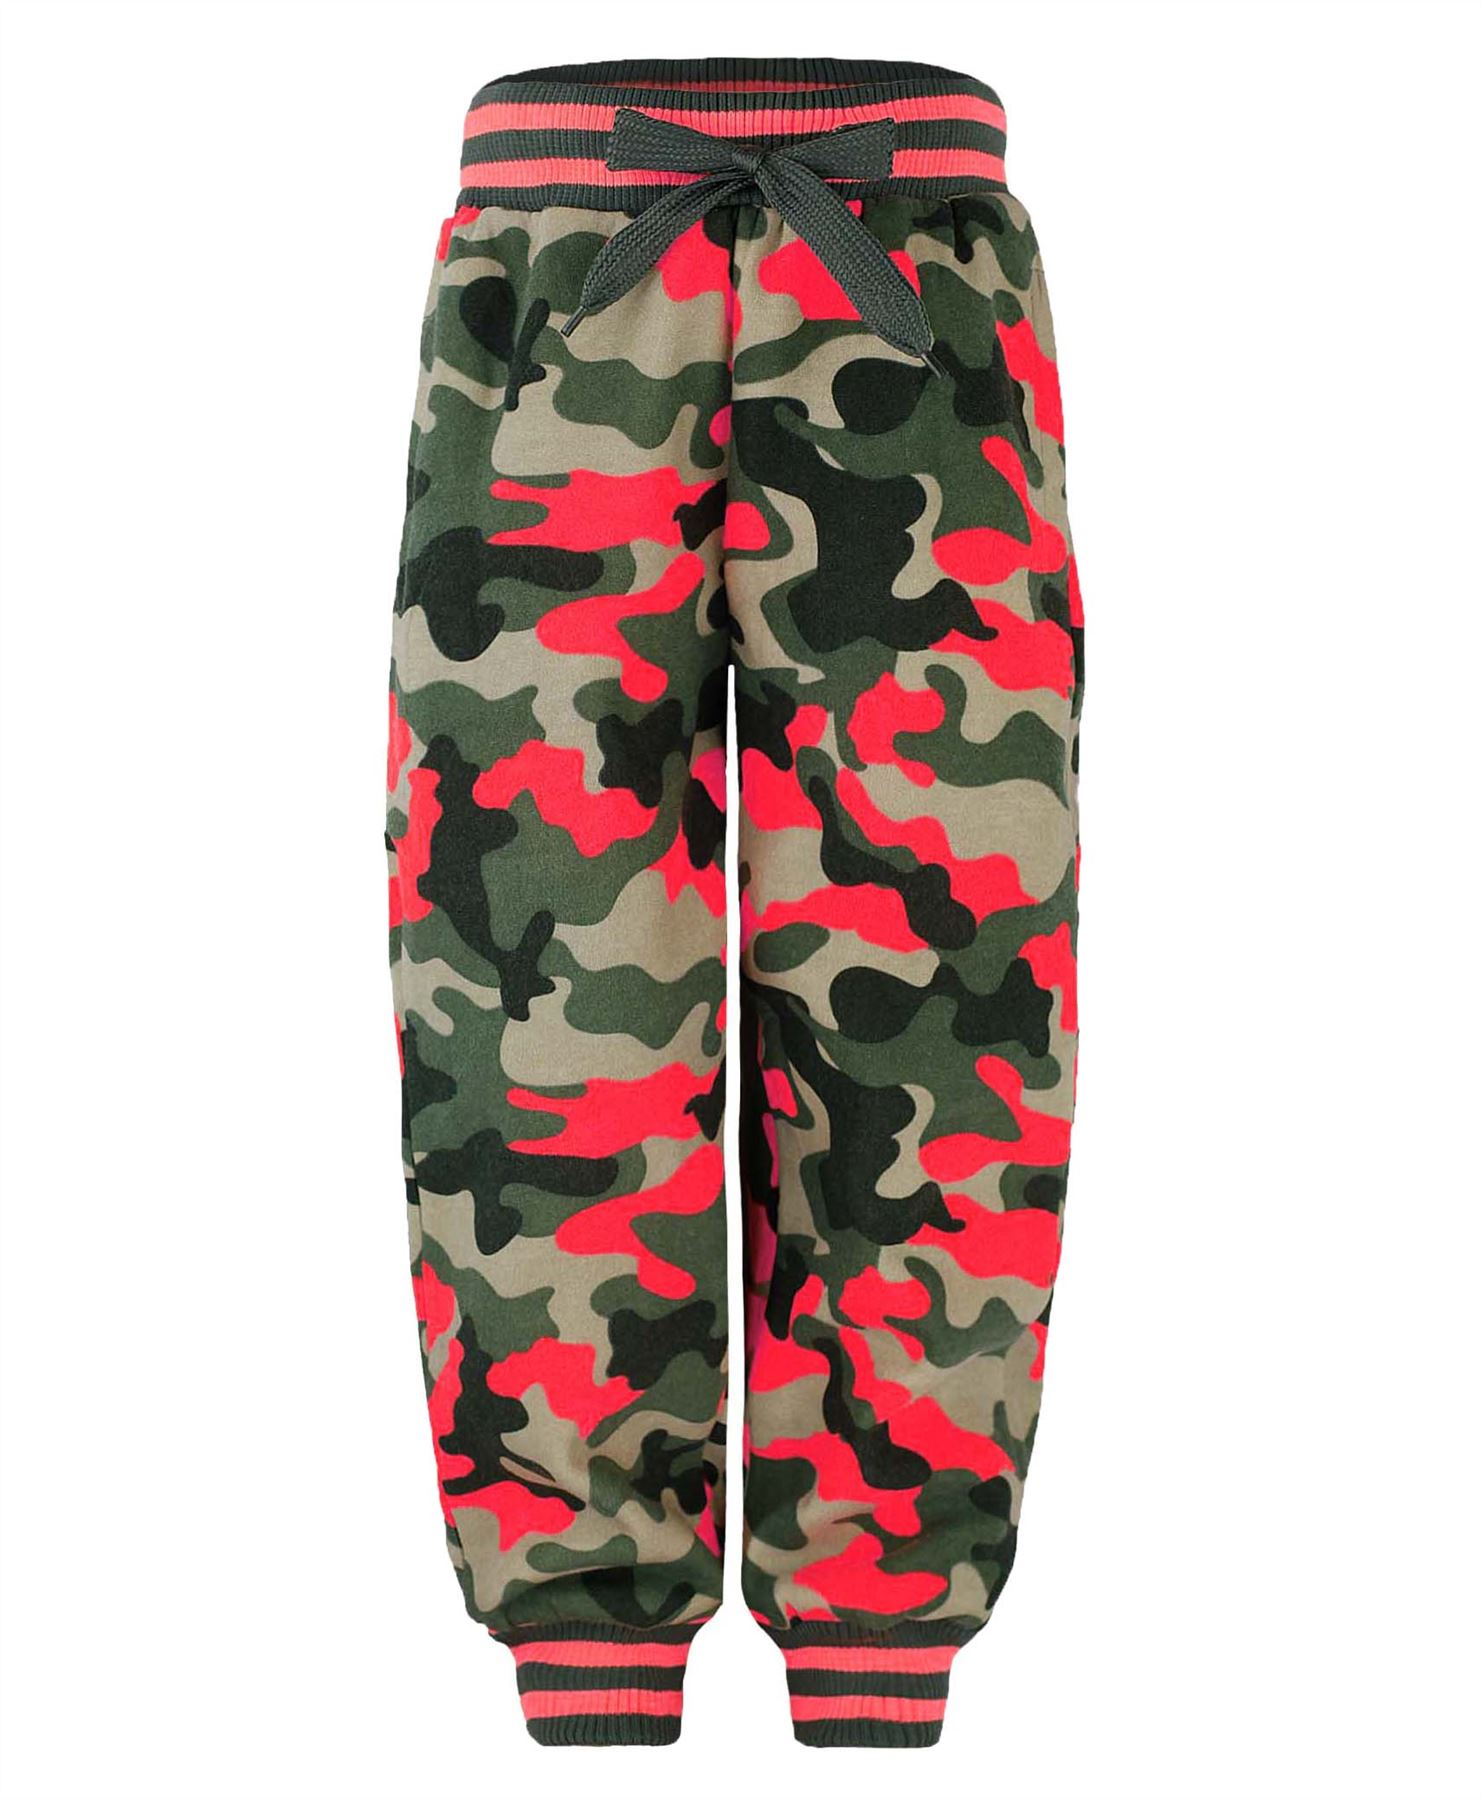 KIDS-CAMOUFLAGE-SPORTS-TROUSERS-GIRLS-BOYS-PANTS-TRACKSUIT-JOGGING-BOTTOMS-3-16